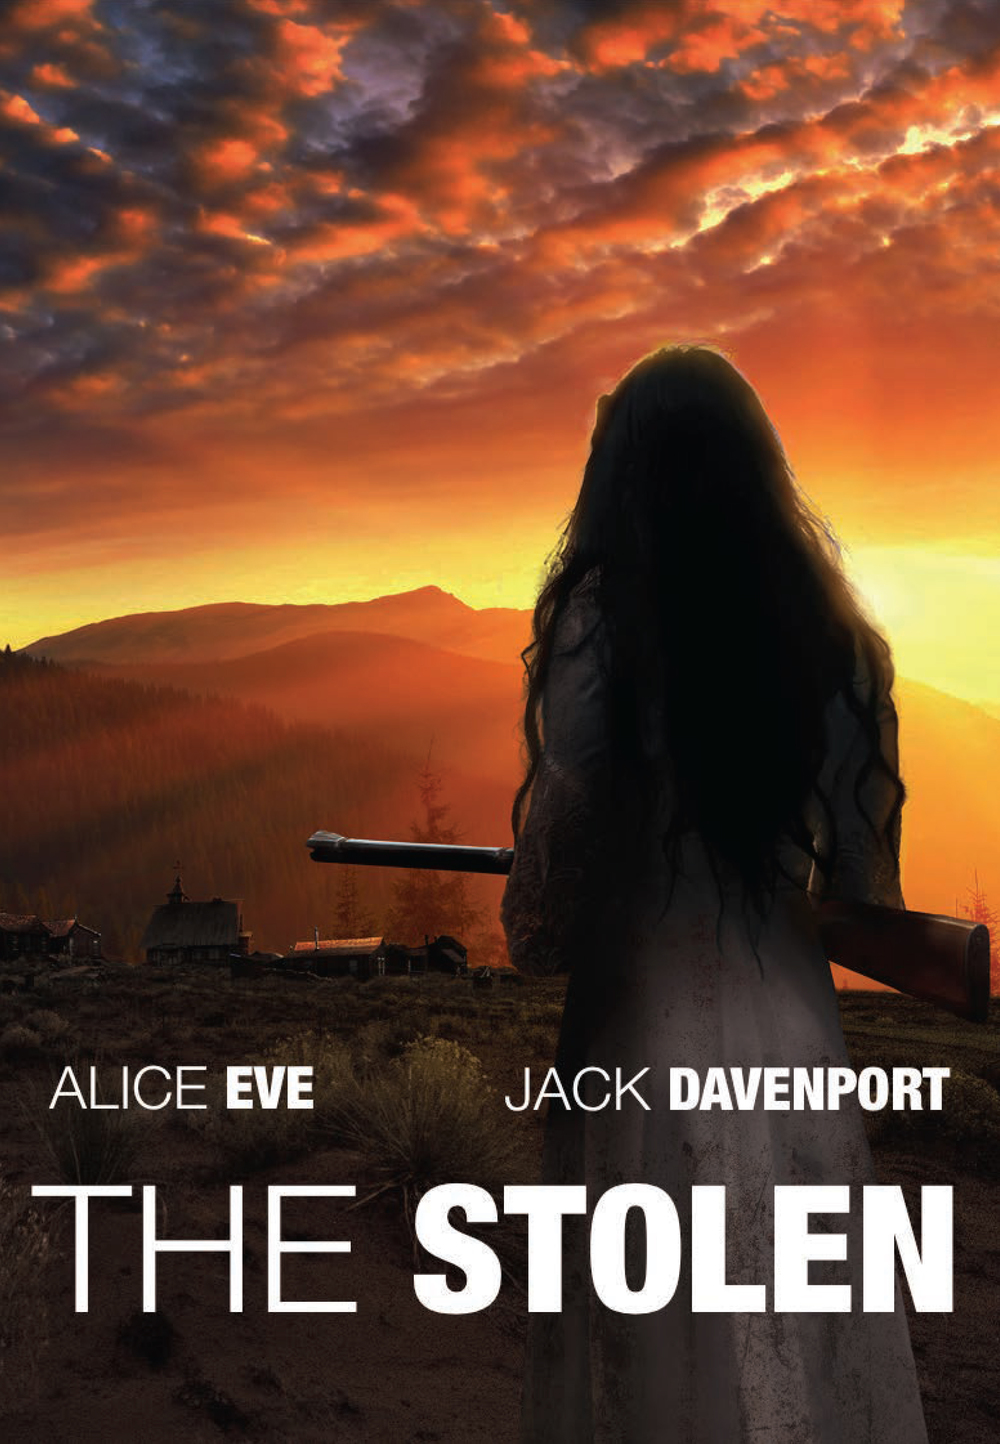 The Stolen - 2016 Production Poster